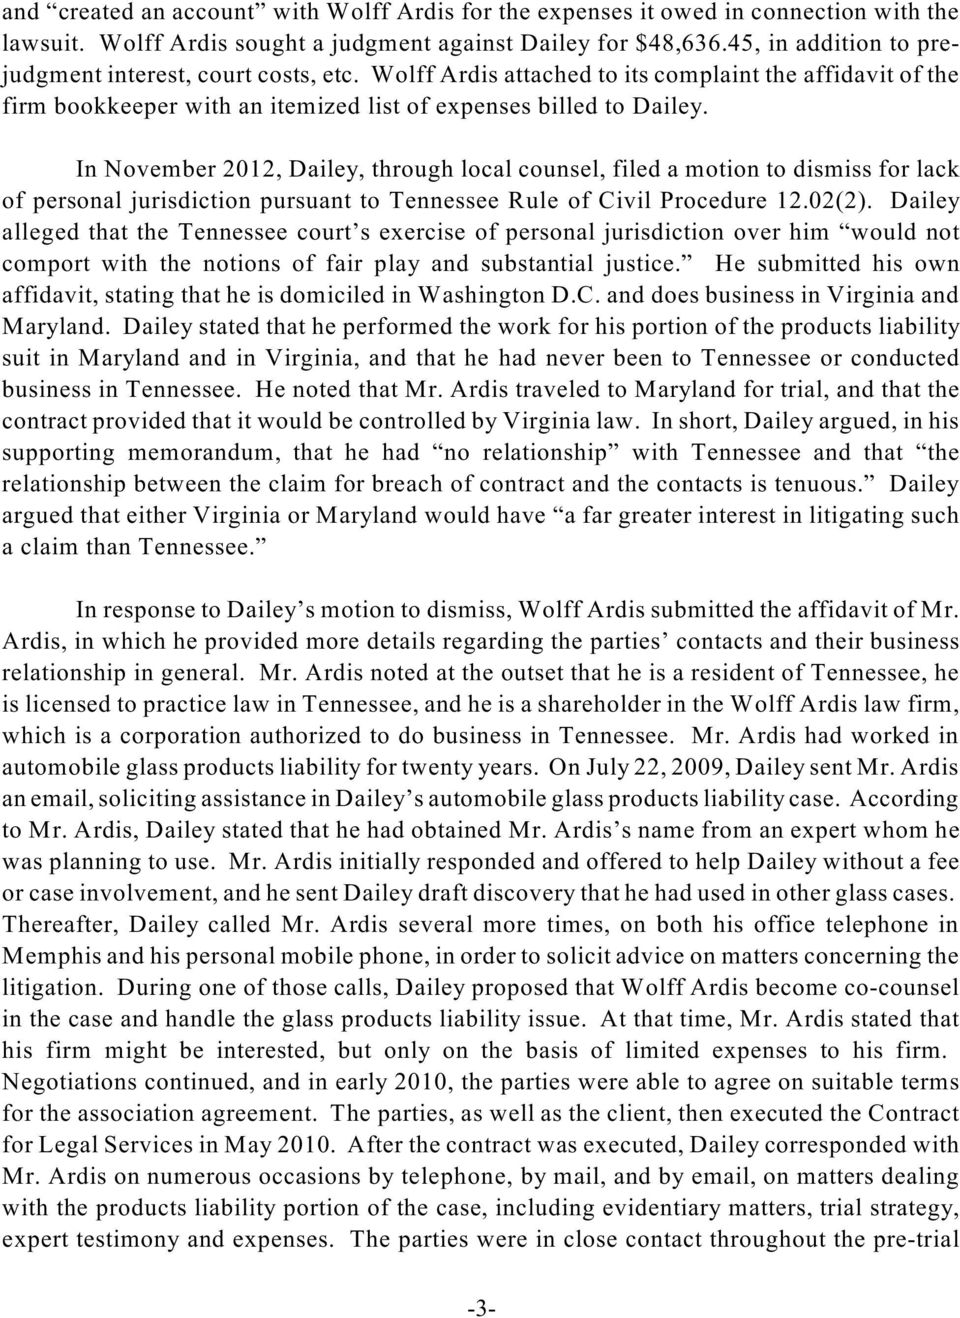 In November 2012, Dailey, through local counsel, filed a motion to dismiss for lack of personal jurisdiction pursuant to Tennessee Rule of Civil Procedure 12.02(2).